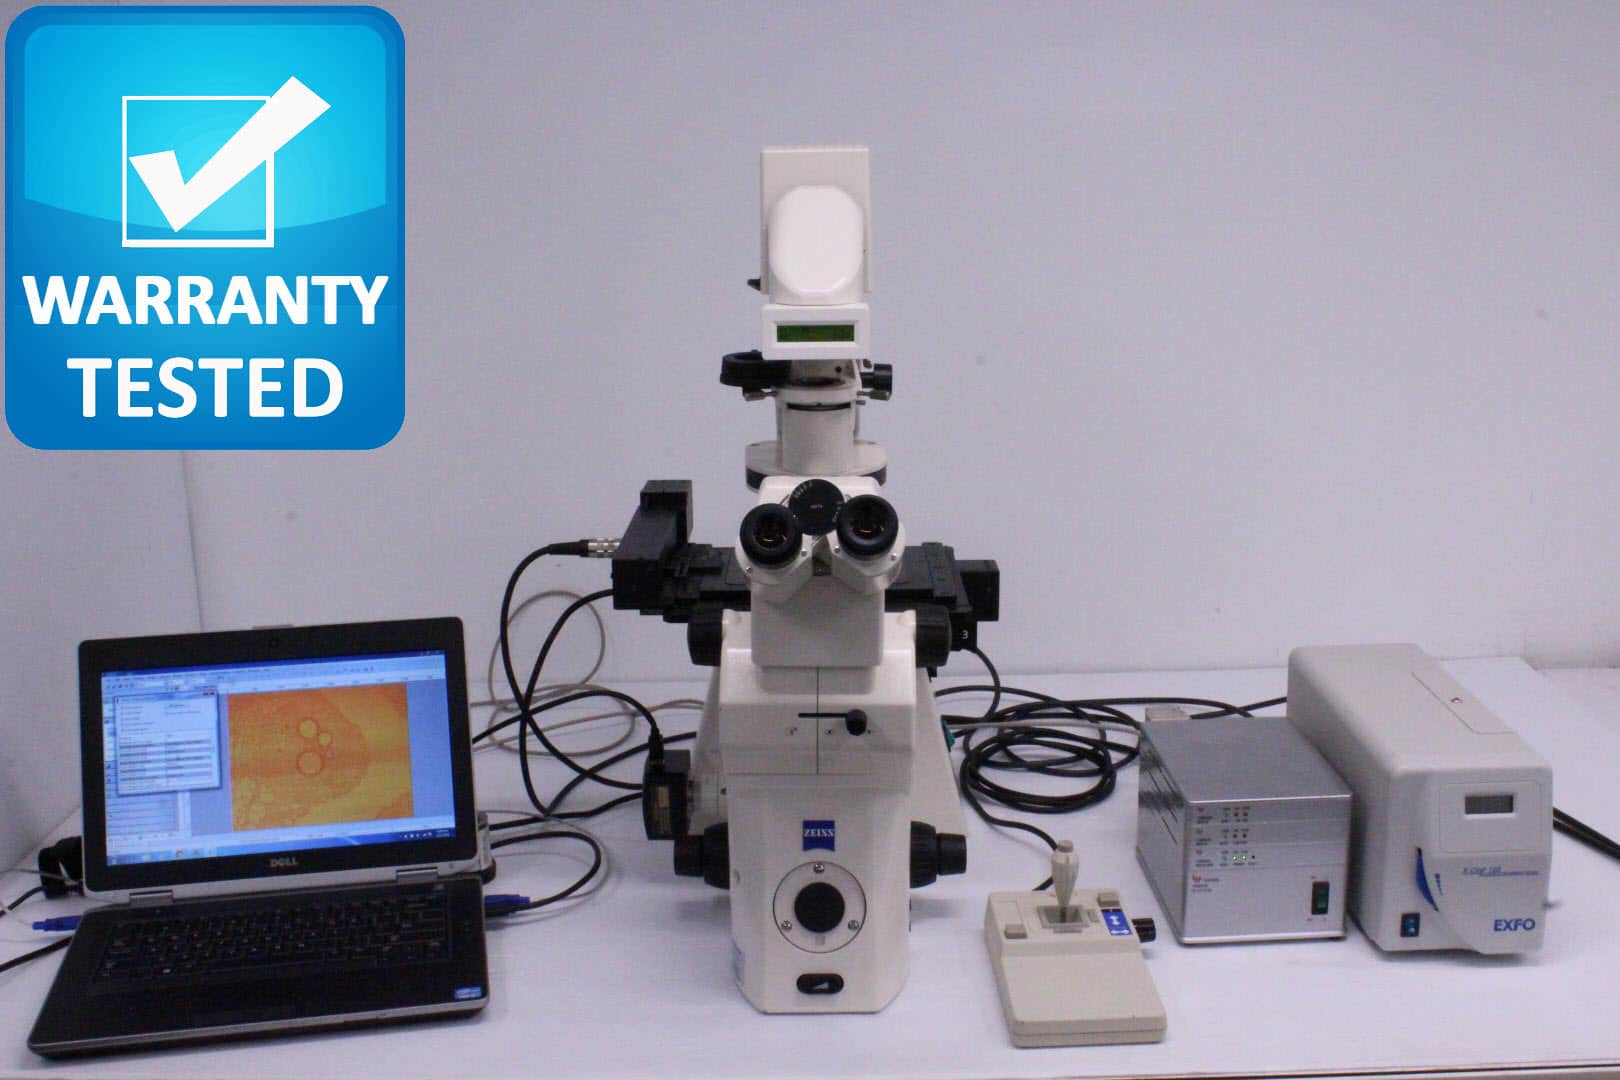 Zeiss Axiovert 200M Inverted Fluorescence Motorized Microscope